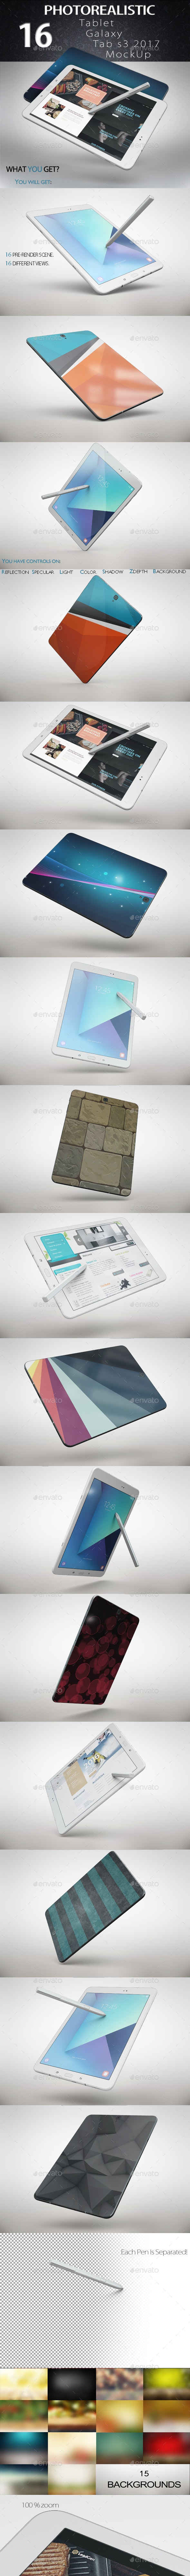 Tablet Galaxy Tab s3 2017 App & Skin MockUp Vol.2 - Product Mock-Ups Graphics